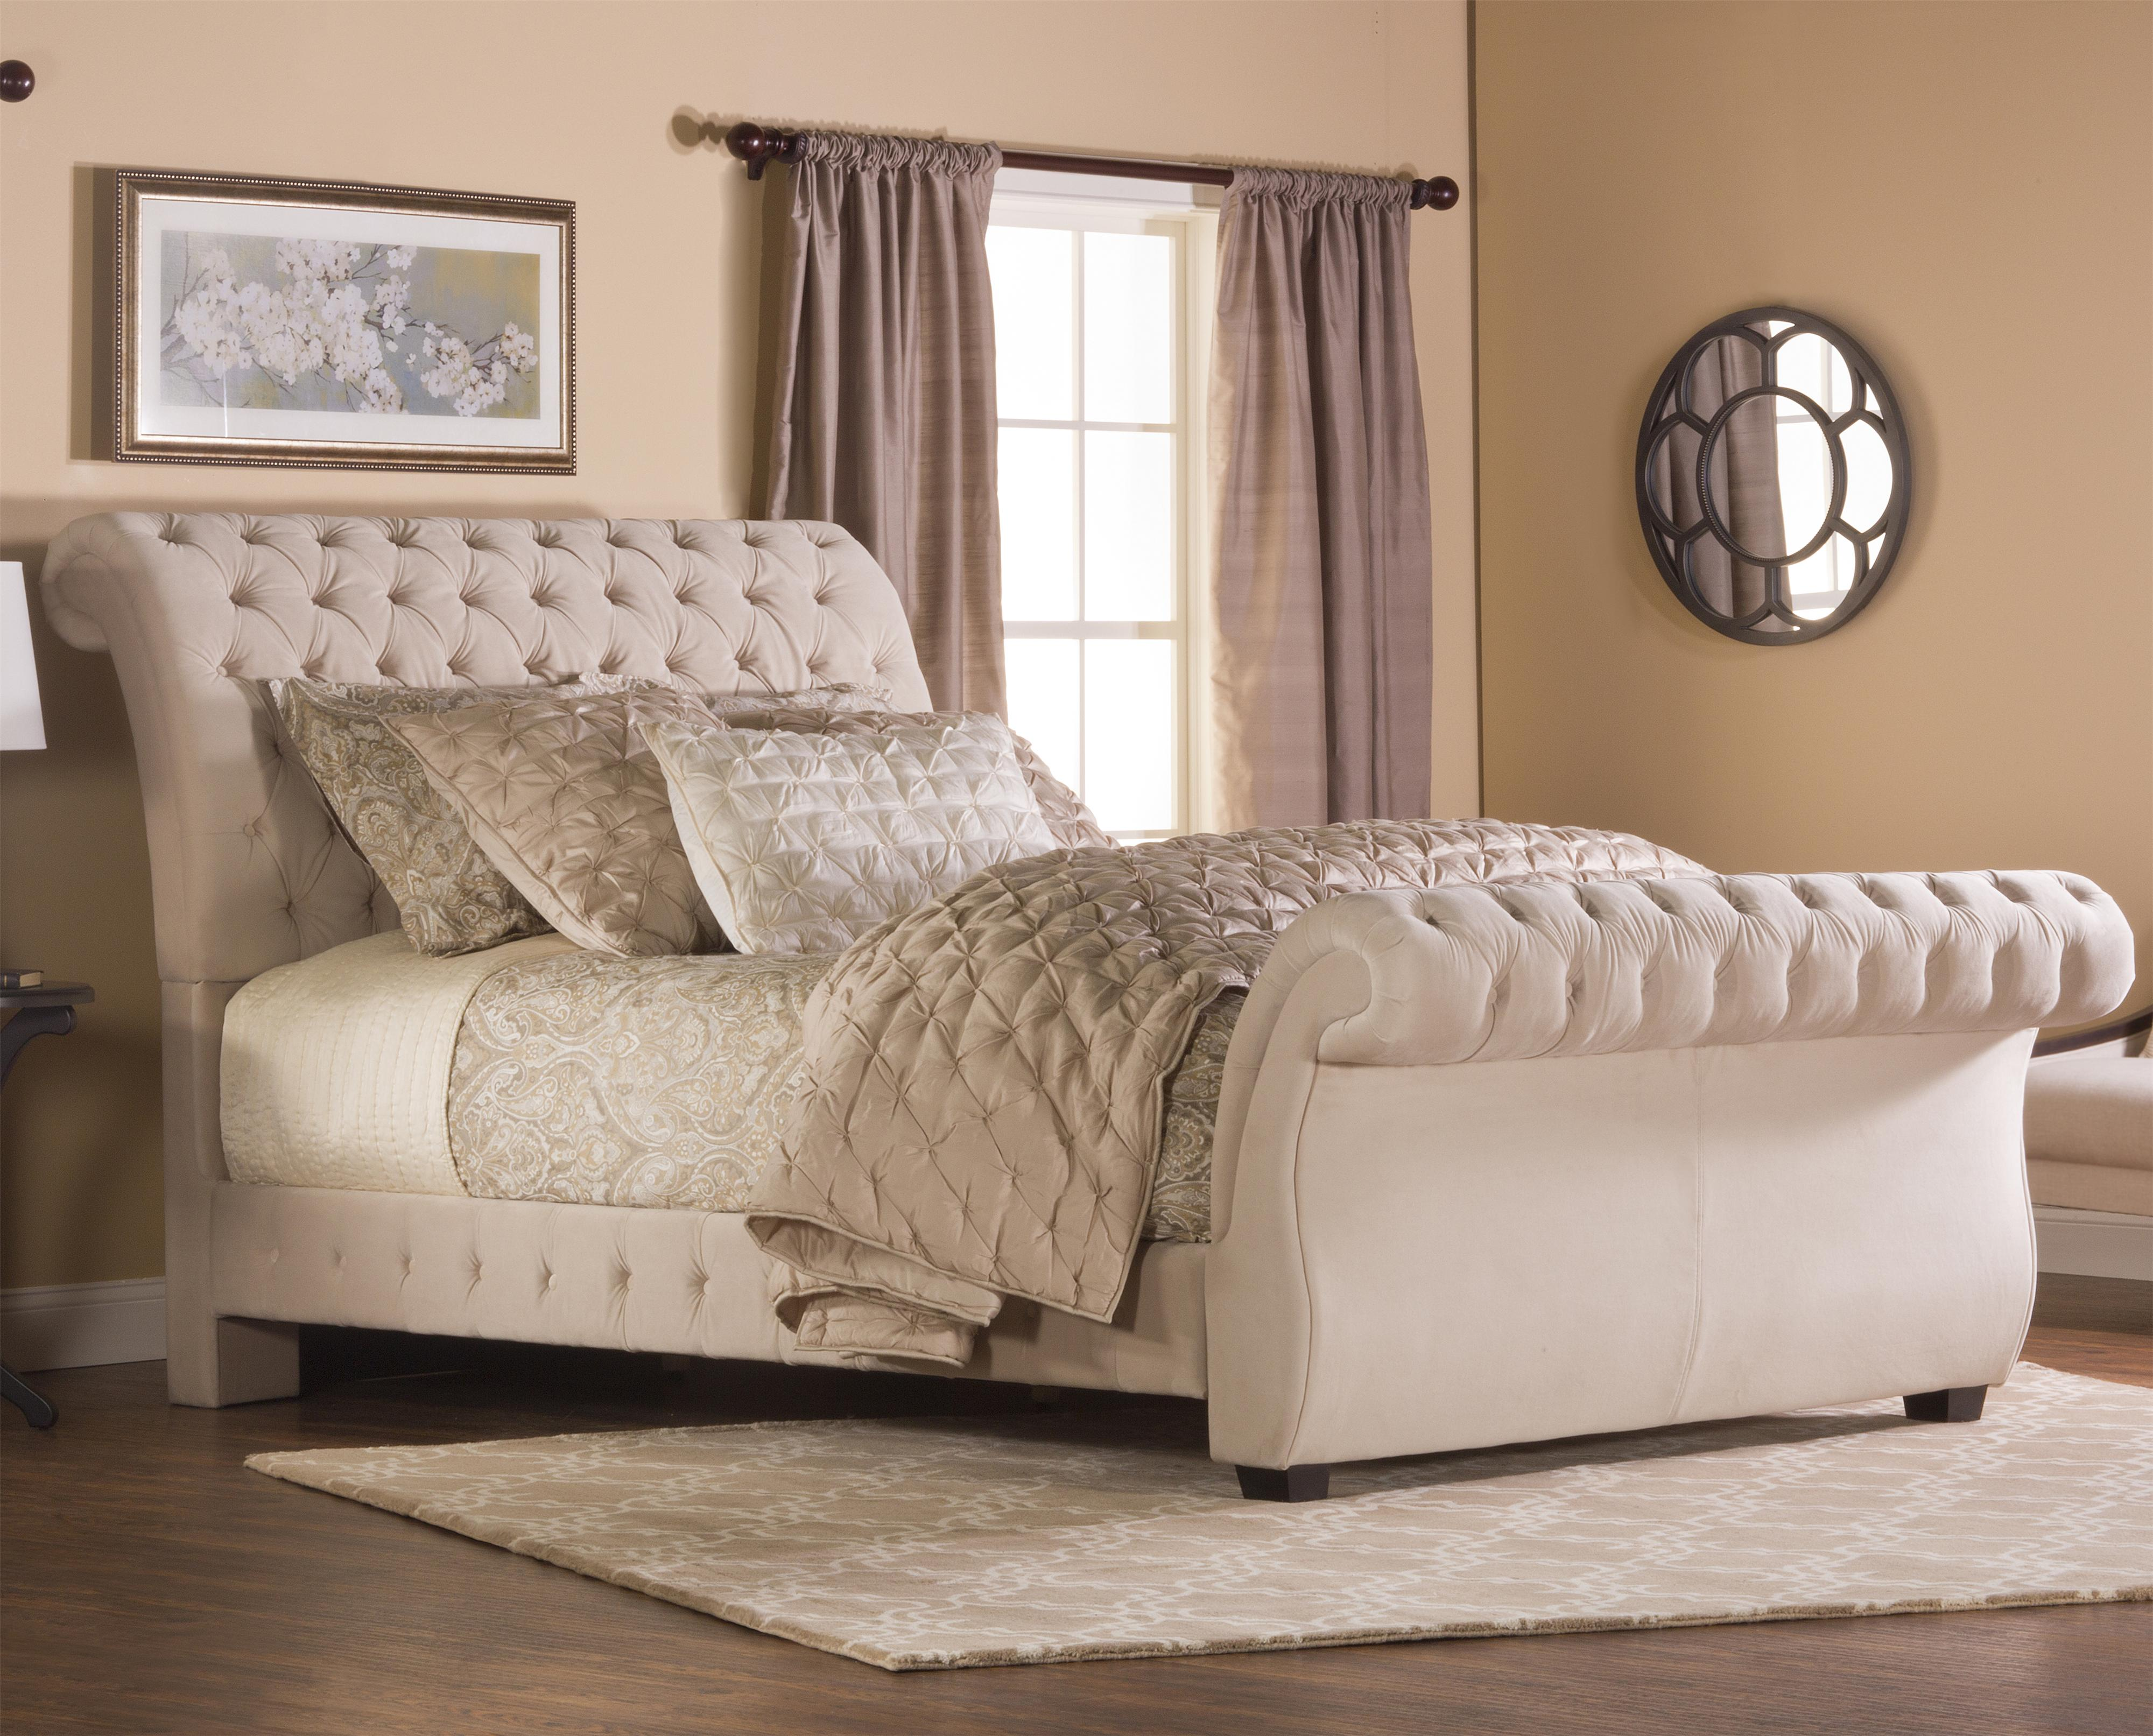 hillsdale upholstered beds king bombay bed  item number . hillsdale upholstered beds bkr king bombay upholstered bed